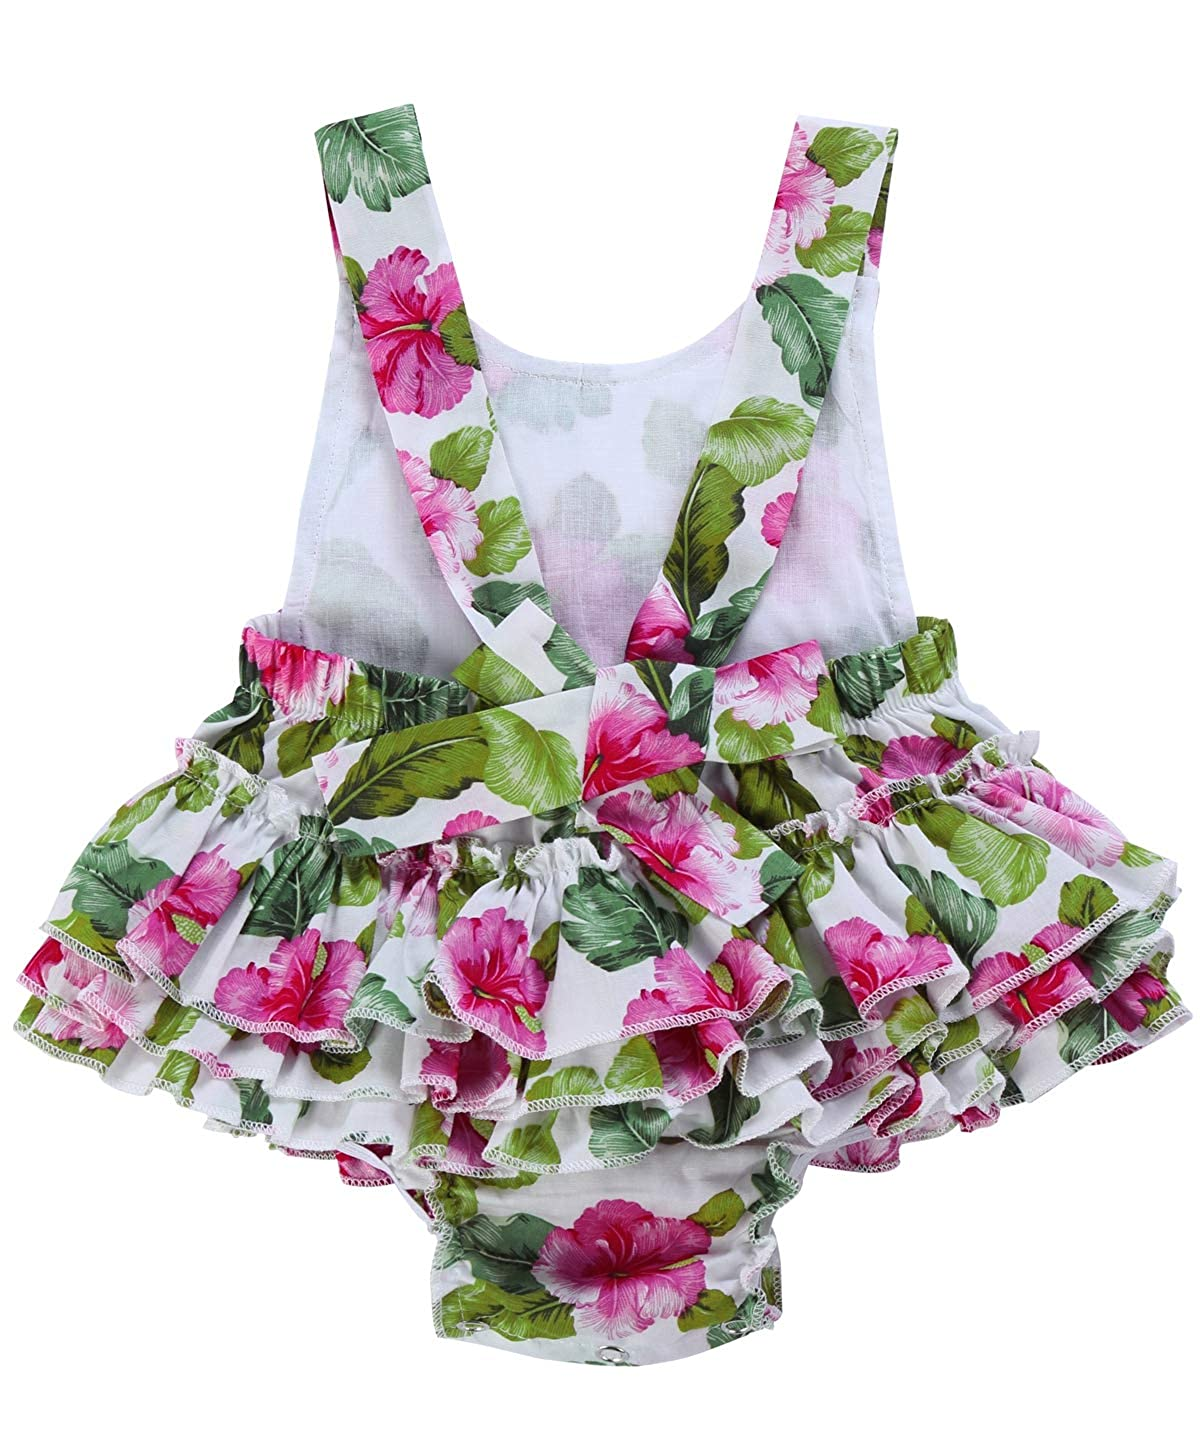 PrinceSasa Baby Girls Floral Print Ruffles Romper Summer Clothes with Headband